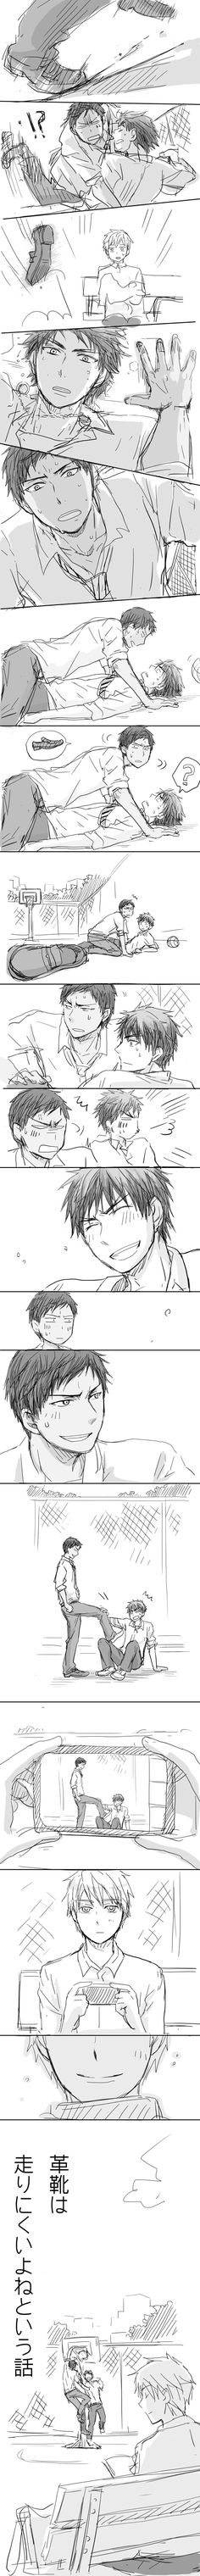 Oh, Kuroko... :') so proud of you, darlin.   [AoKaga / Bromance / SO CUTE / OT3 / Kuroko no Basuke / Humor Comic]